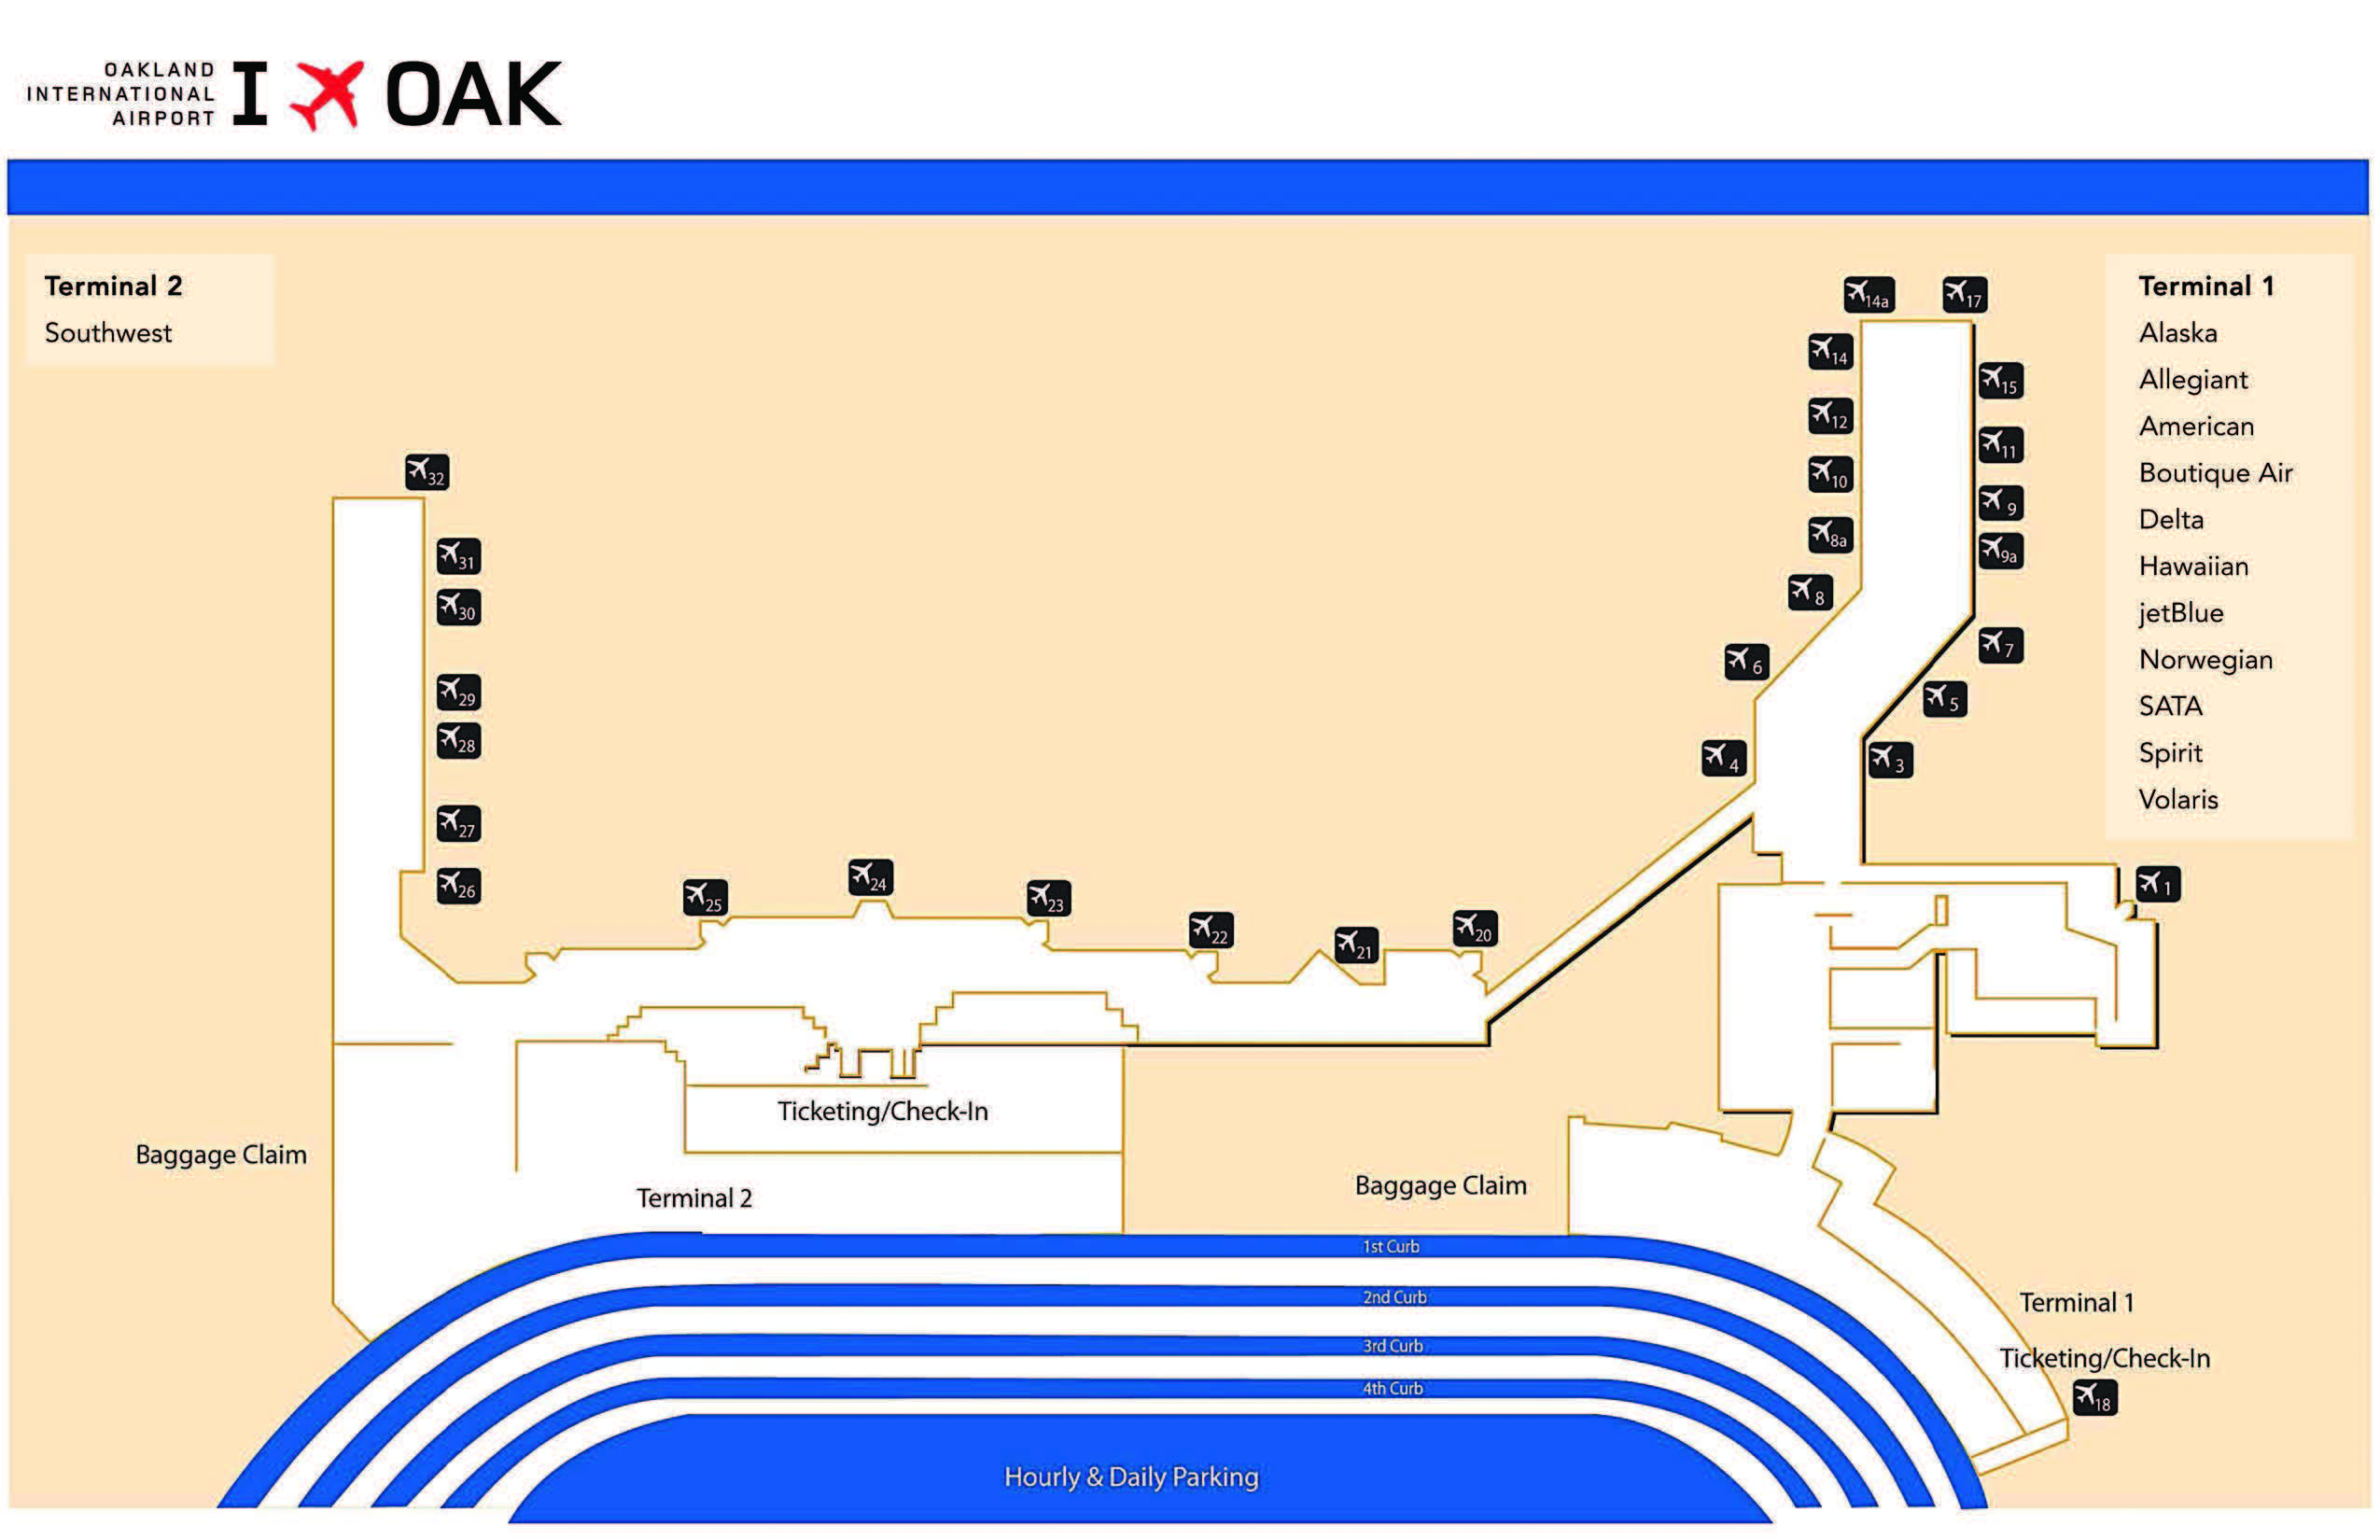 Oakland Airport Terminal Map Airport Terminal Map   Oakland International Airport Oakland Airport Terminal Map